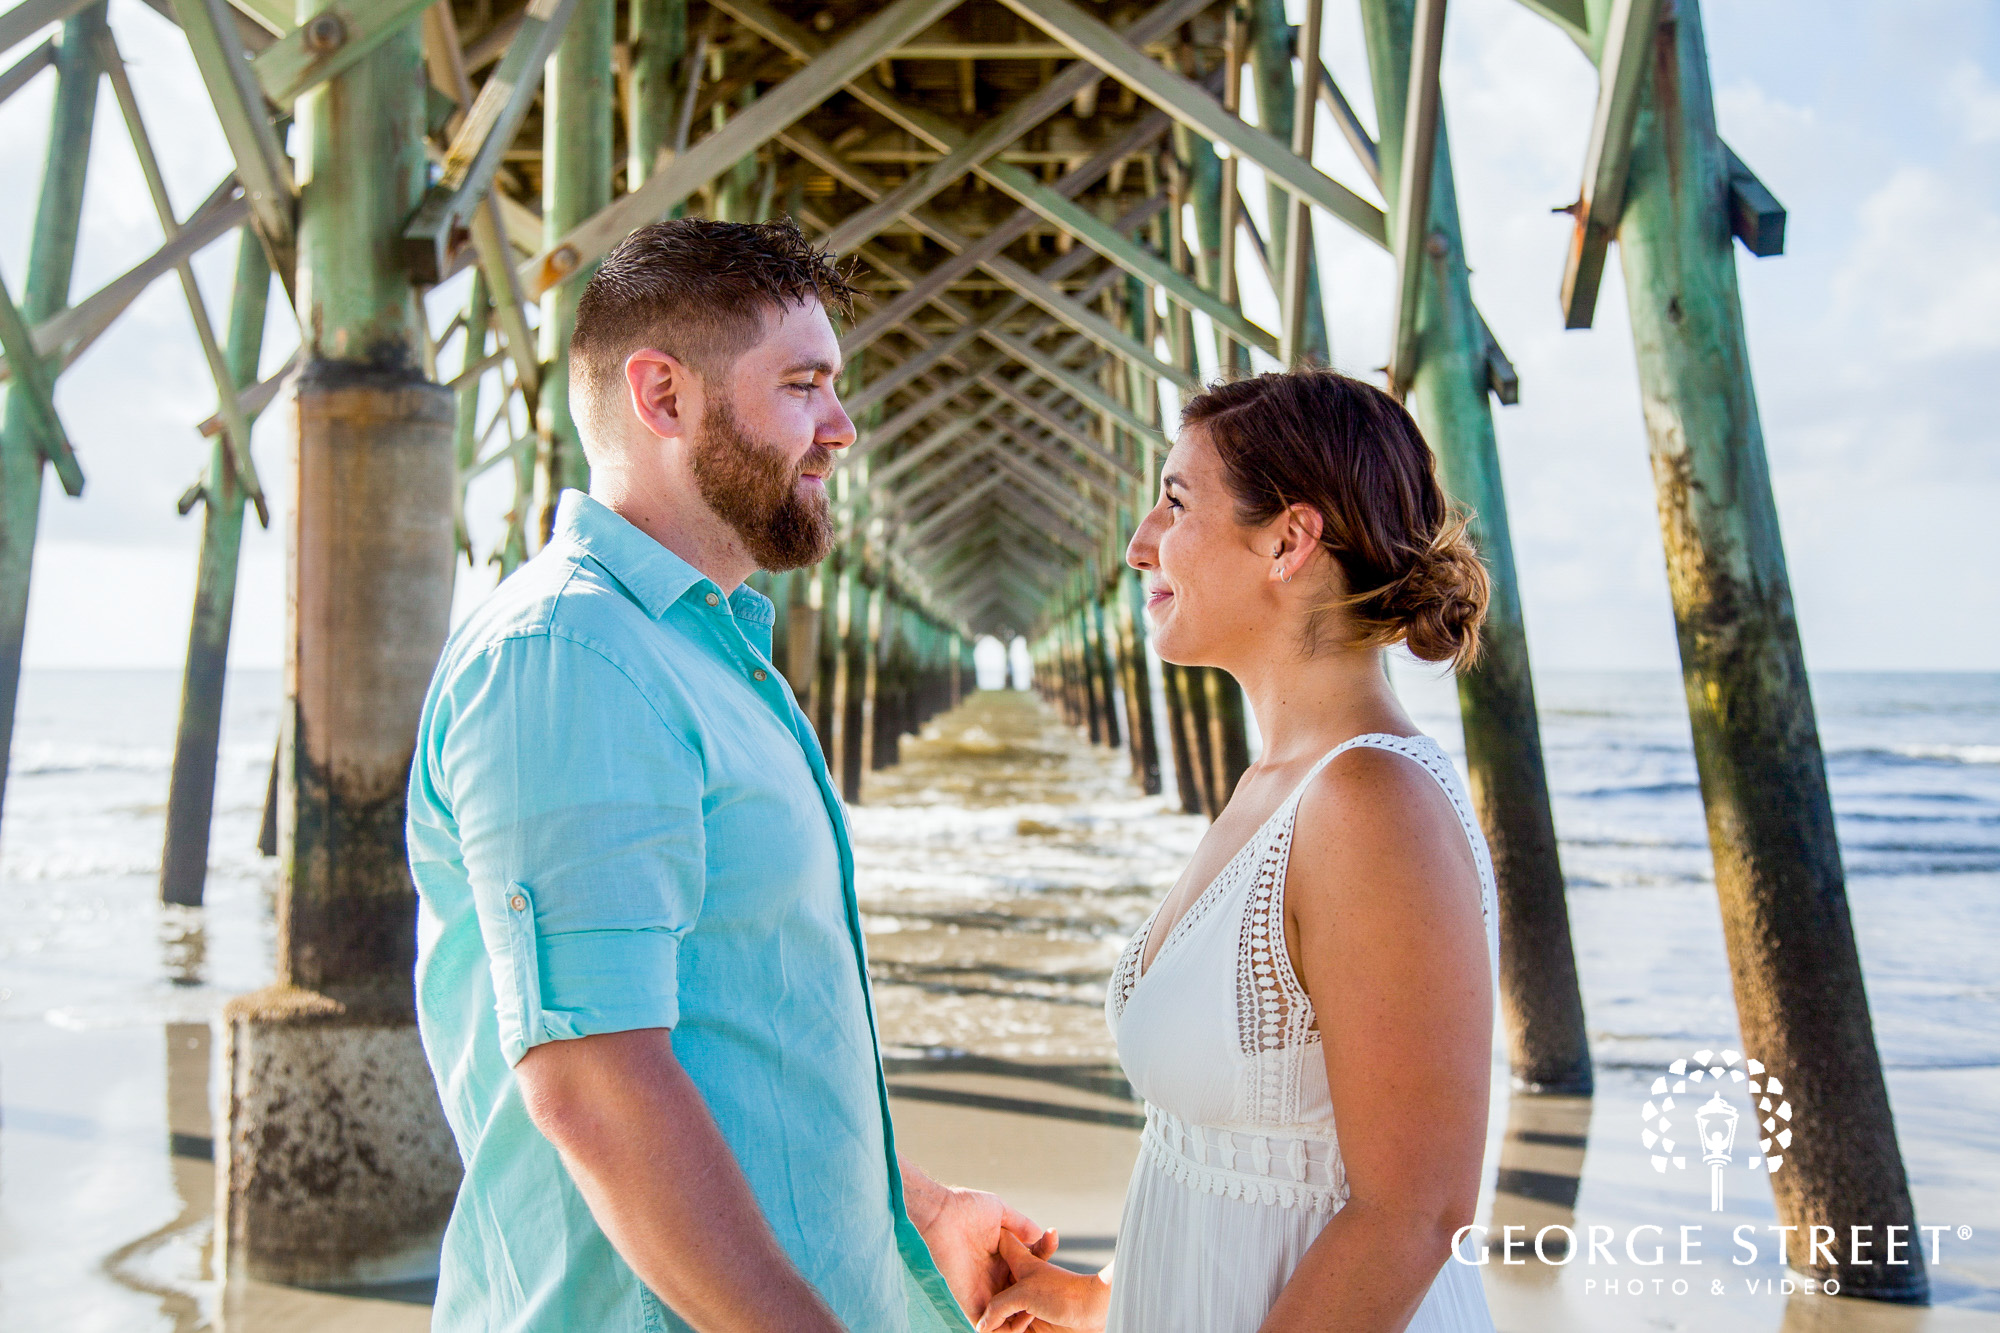 George Street's Top 4 Engagement Session Locations in Charleston